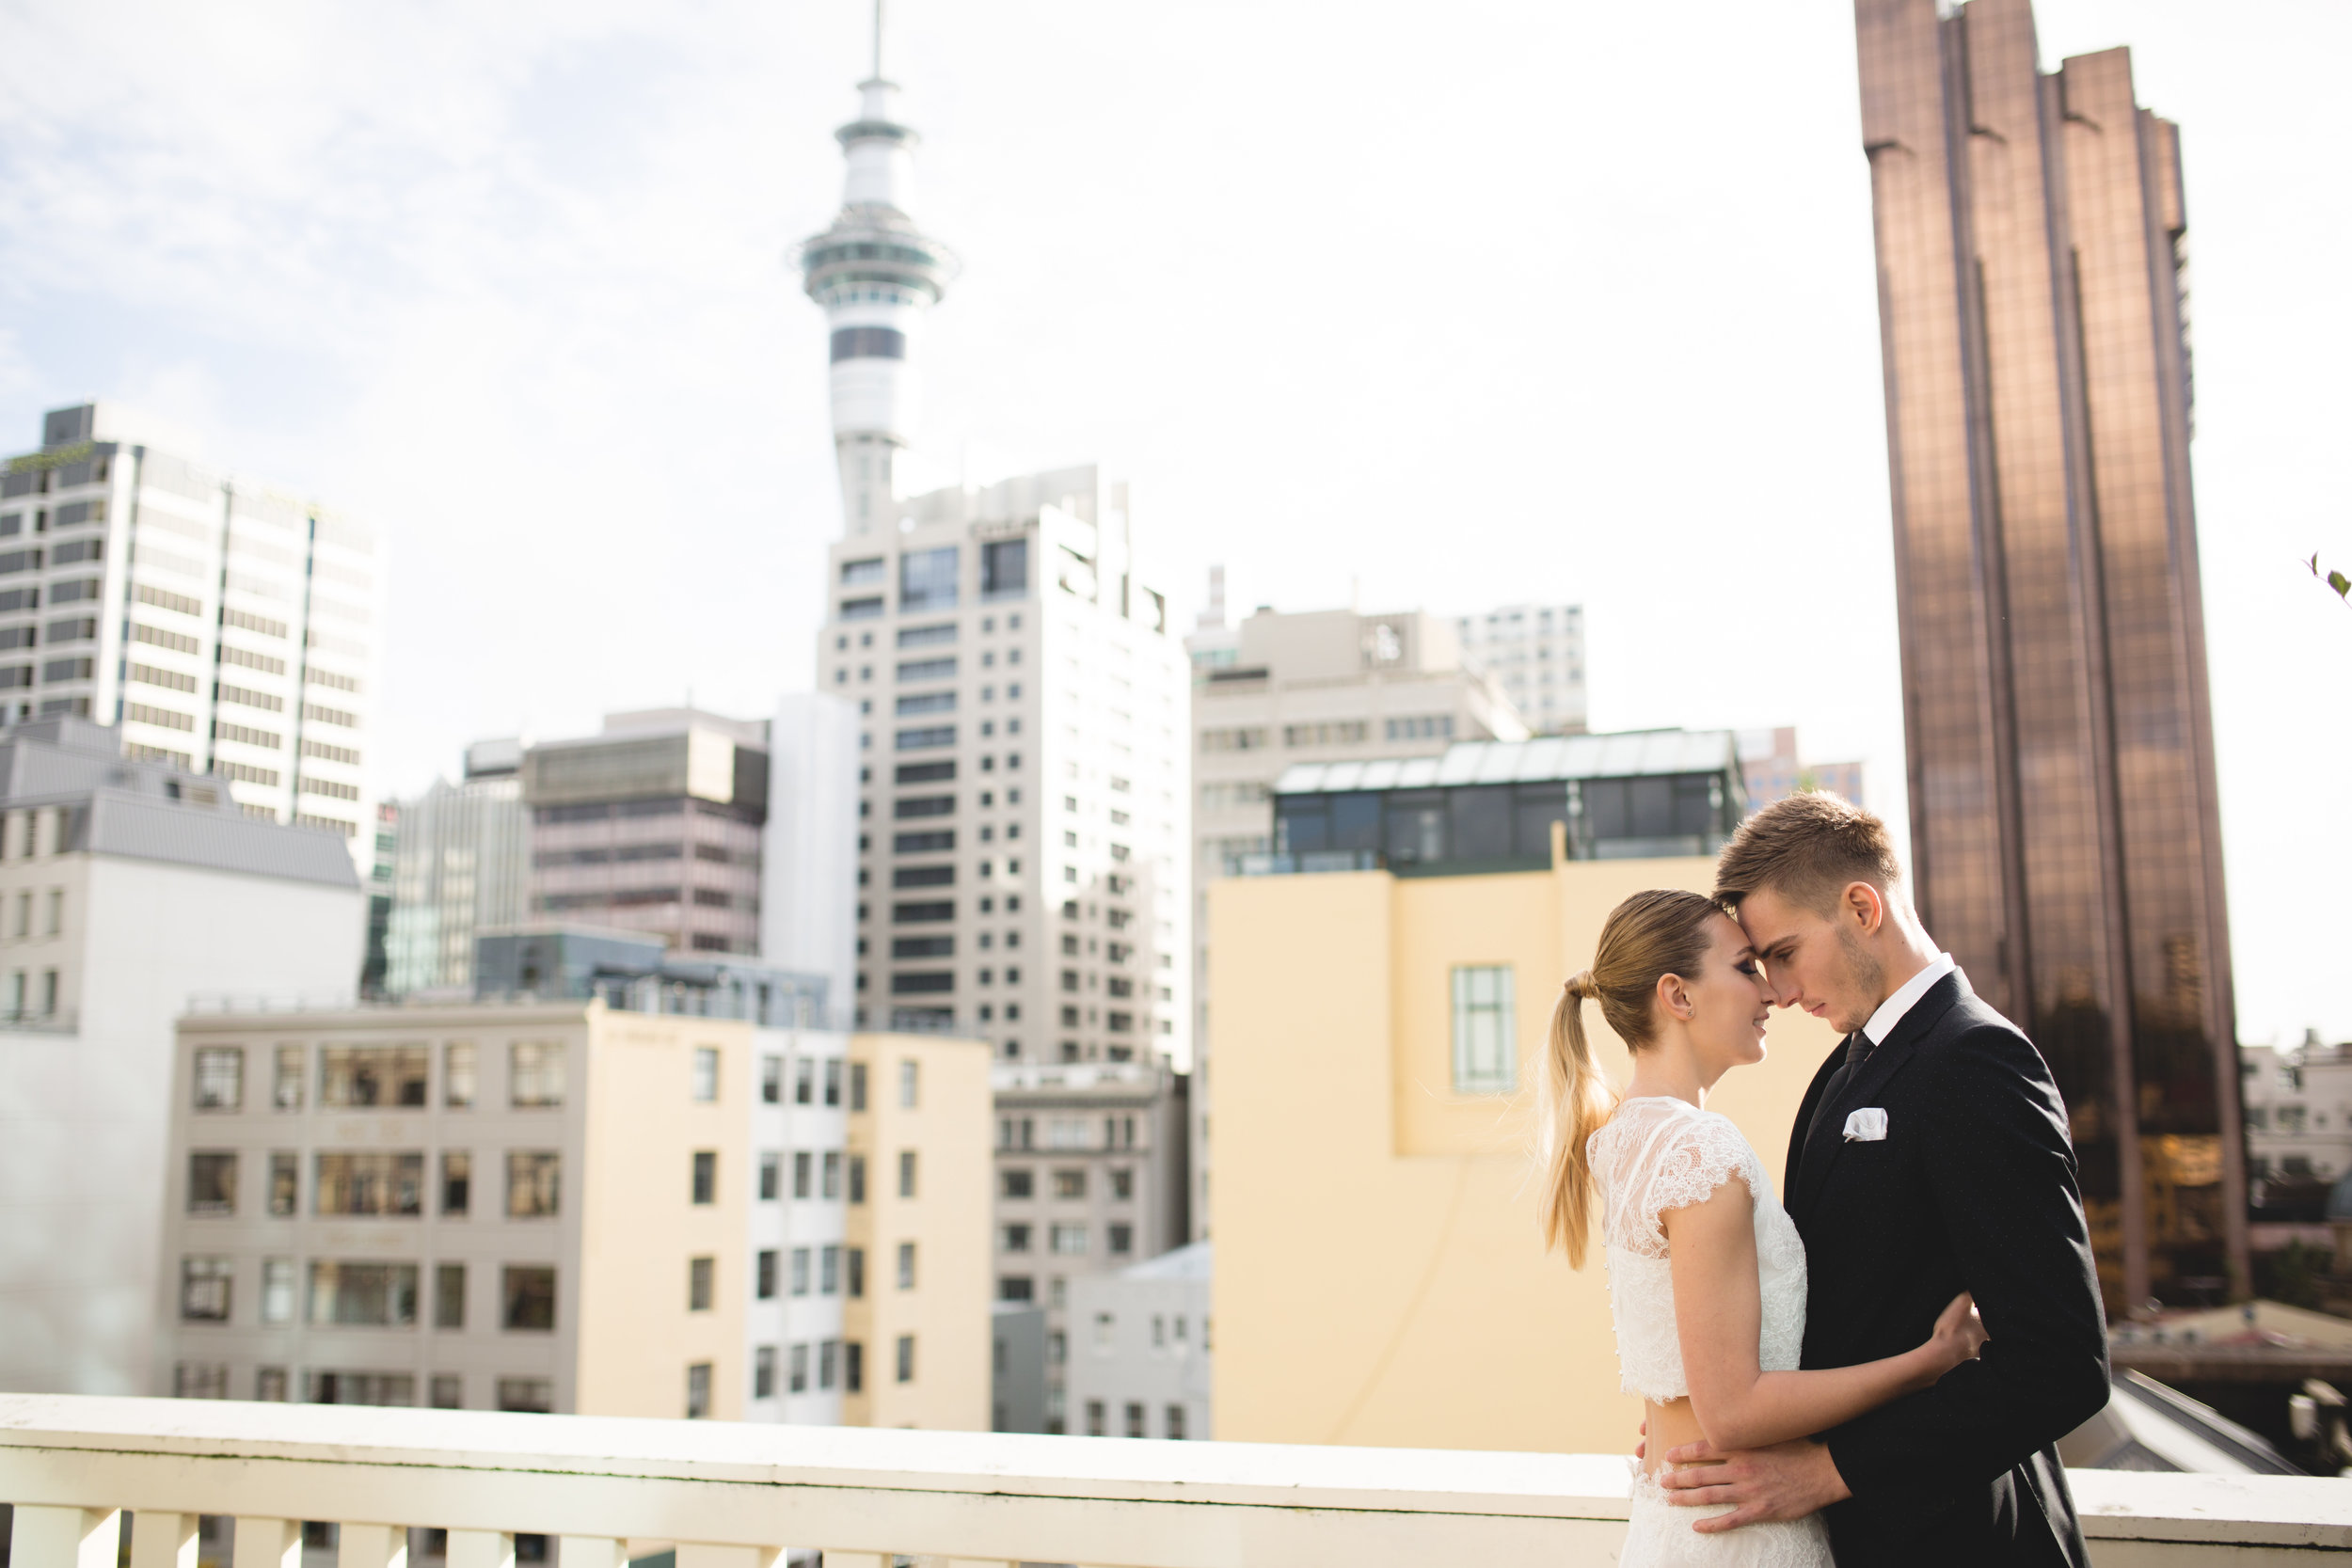 urban rooftop elopement -® Sweet Events Photography 2016 -83.jpg